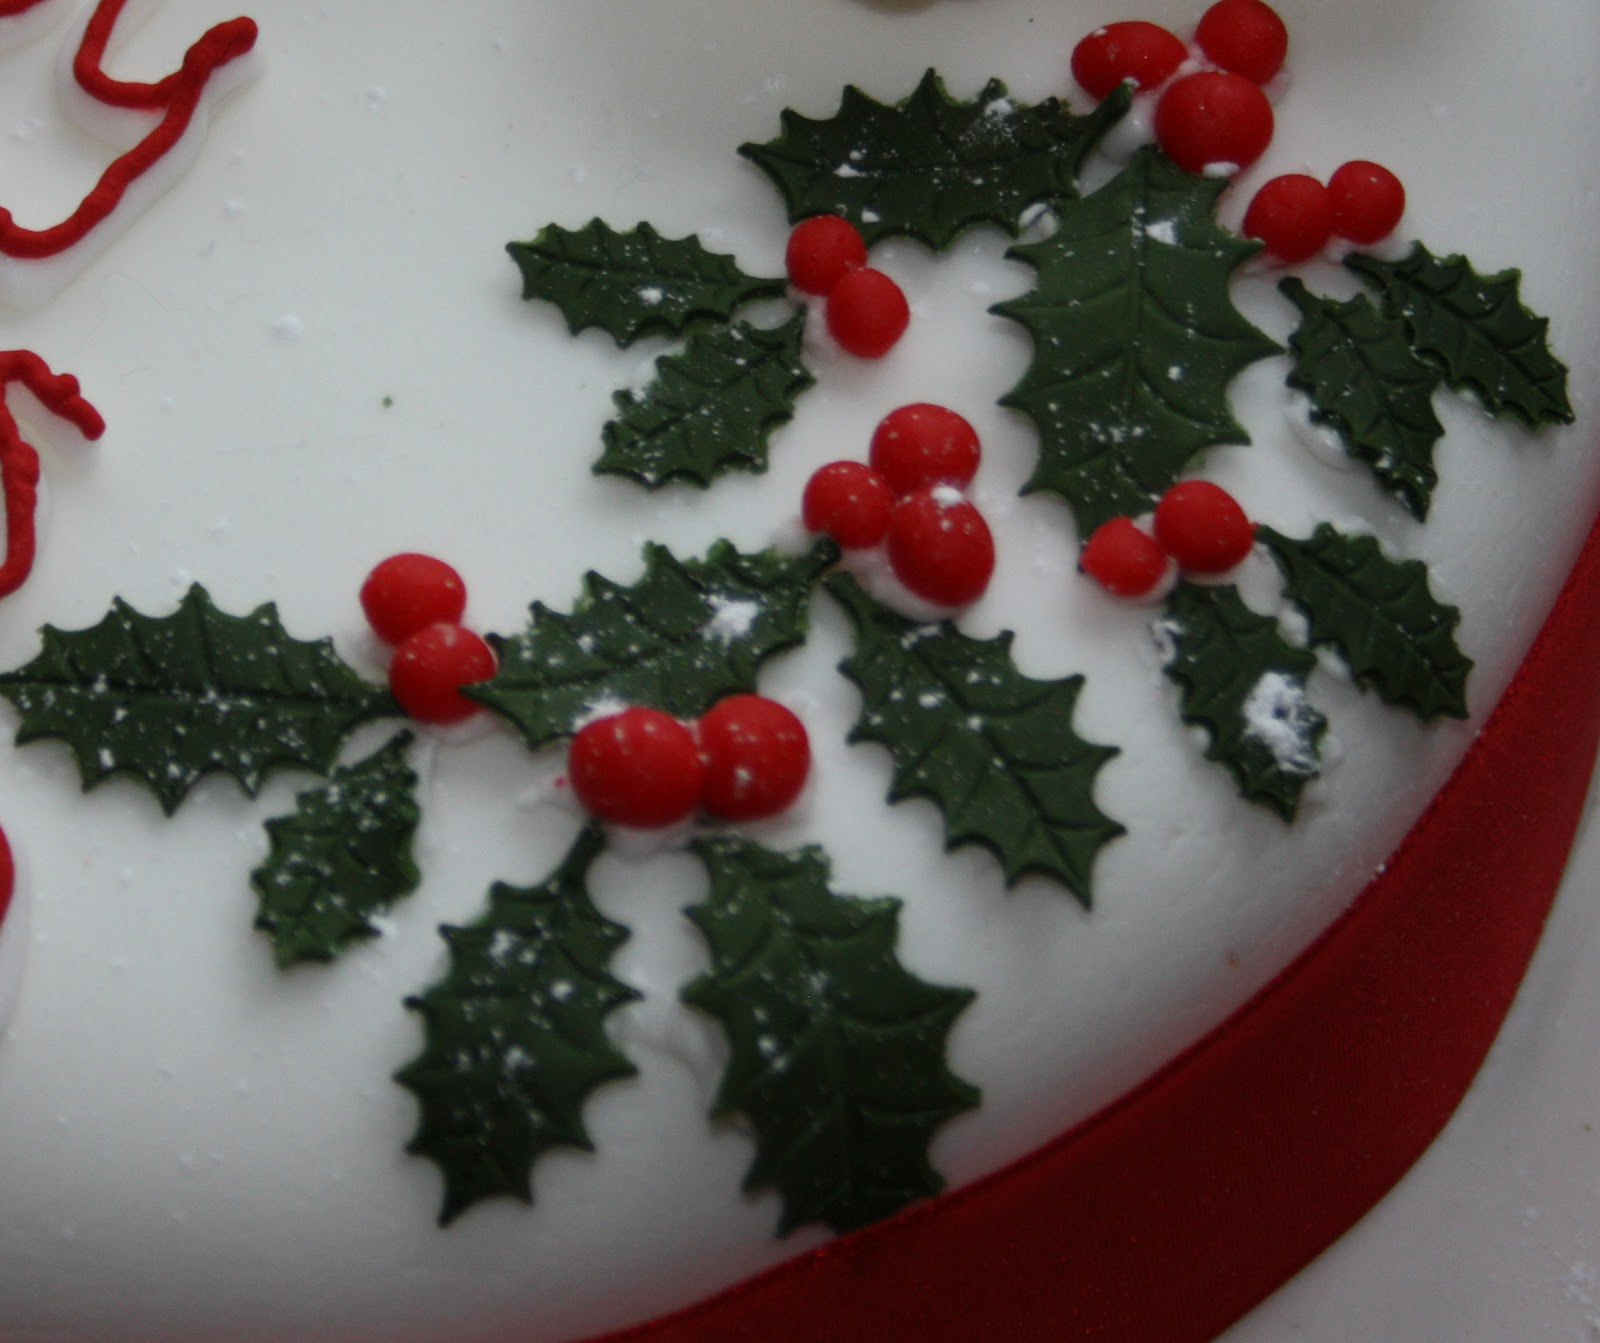 Christmas Cake Decoration Holly : Decorating the Christmas Cake Bex in Sugarland